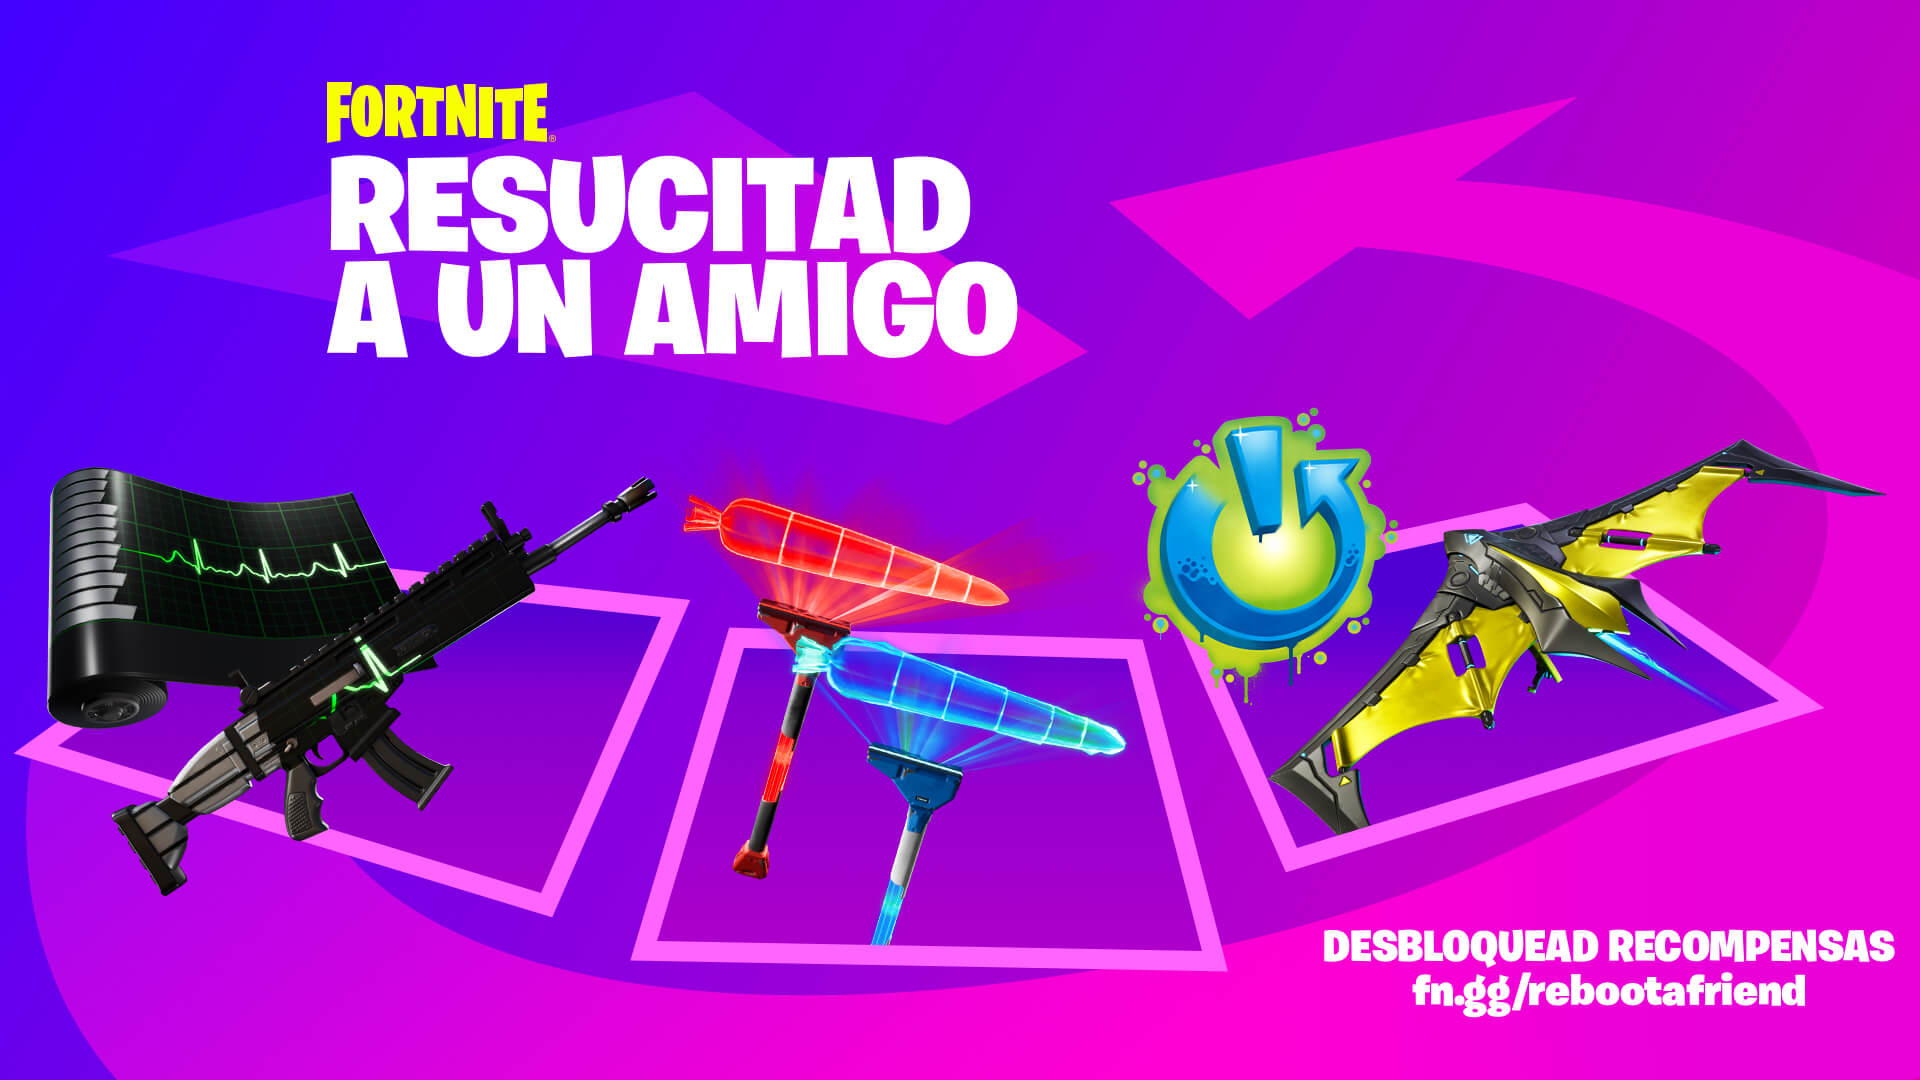 Fortnite Reboot A Friend Rewards ESES